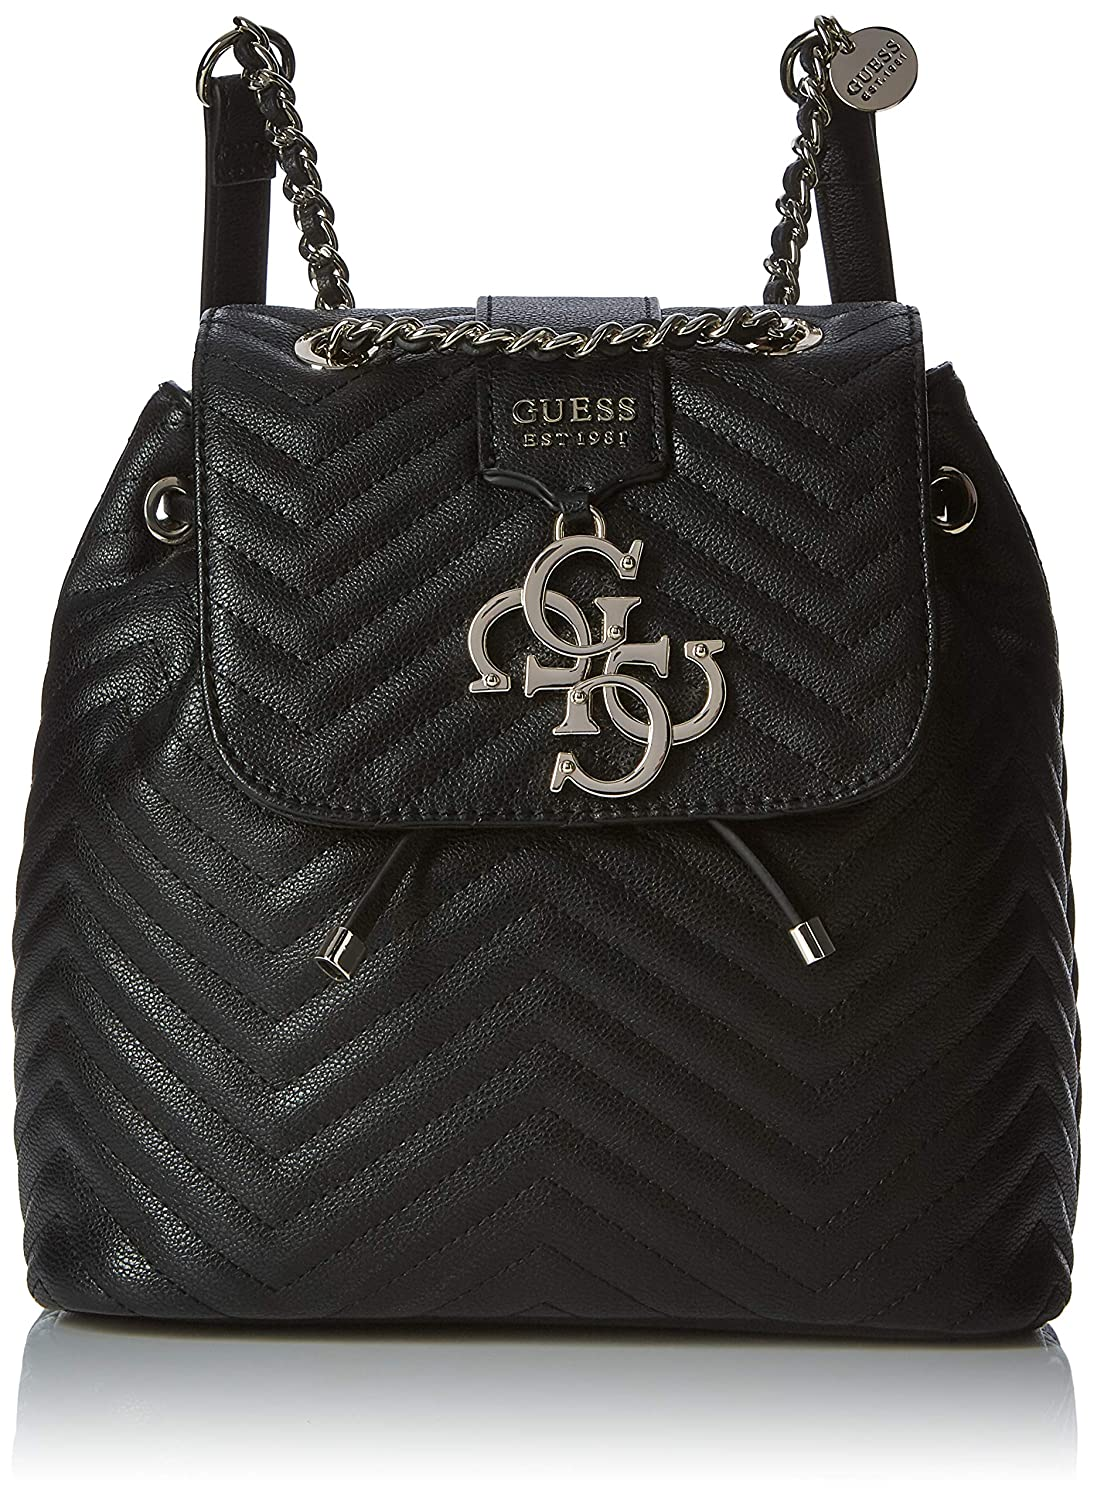 Guess - Violet Backpack, Mujer, Negro (Black), 25.5x25x14 cm (W x H L): Amazon.es: Zapatos y complementos